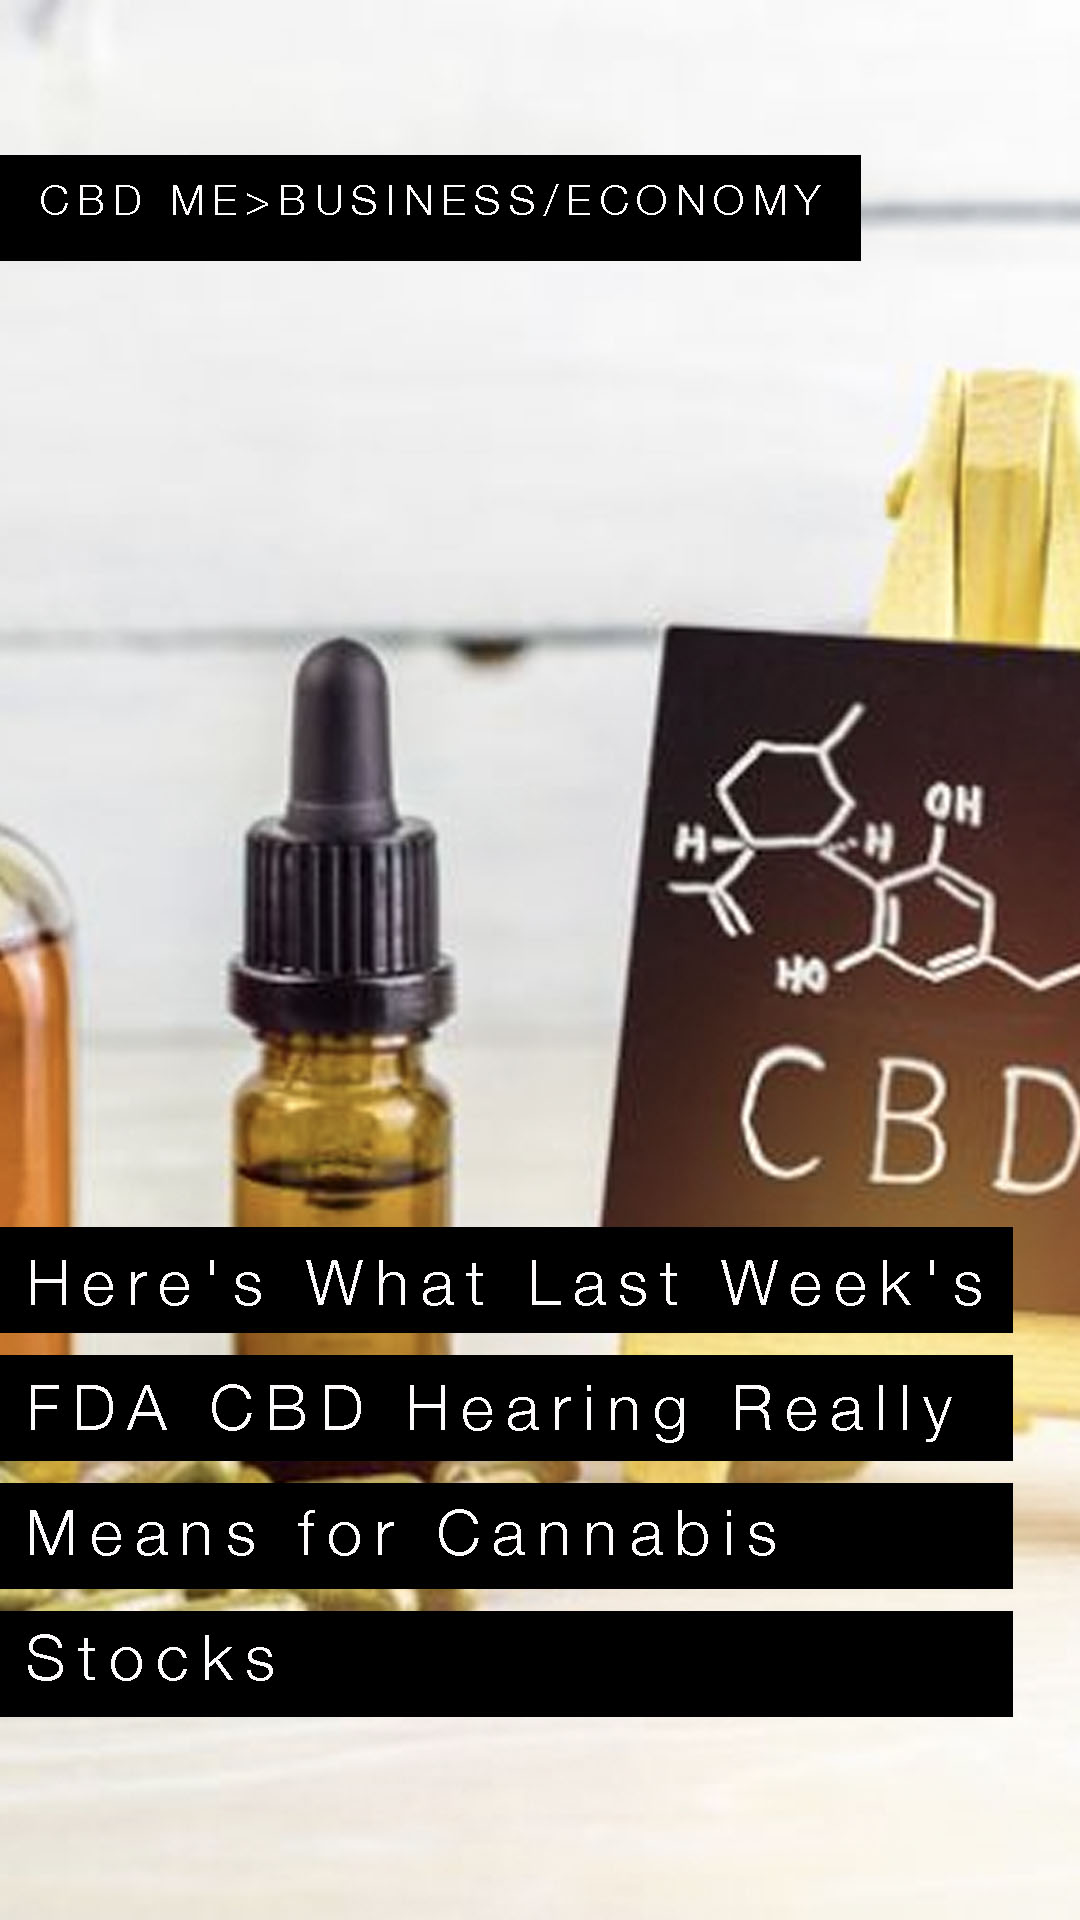 Here's What Last Week's FDA CBD Hearing Really Means for Cannabis Stocks | YAHOO FINANCE